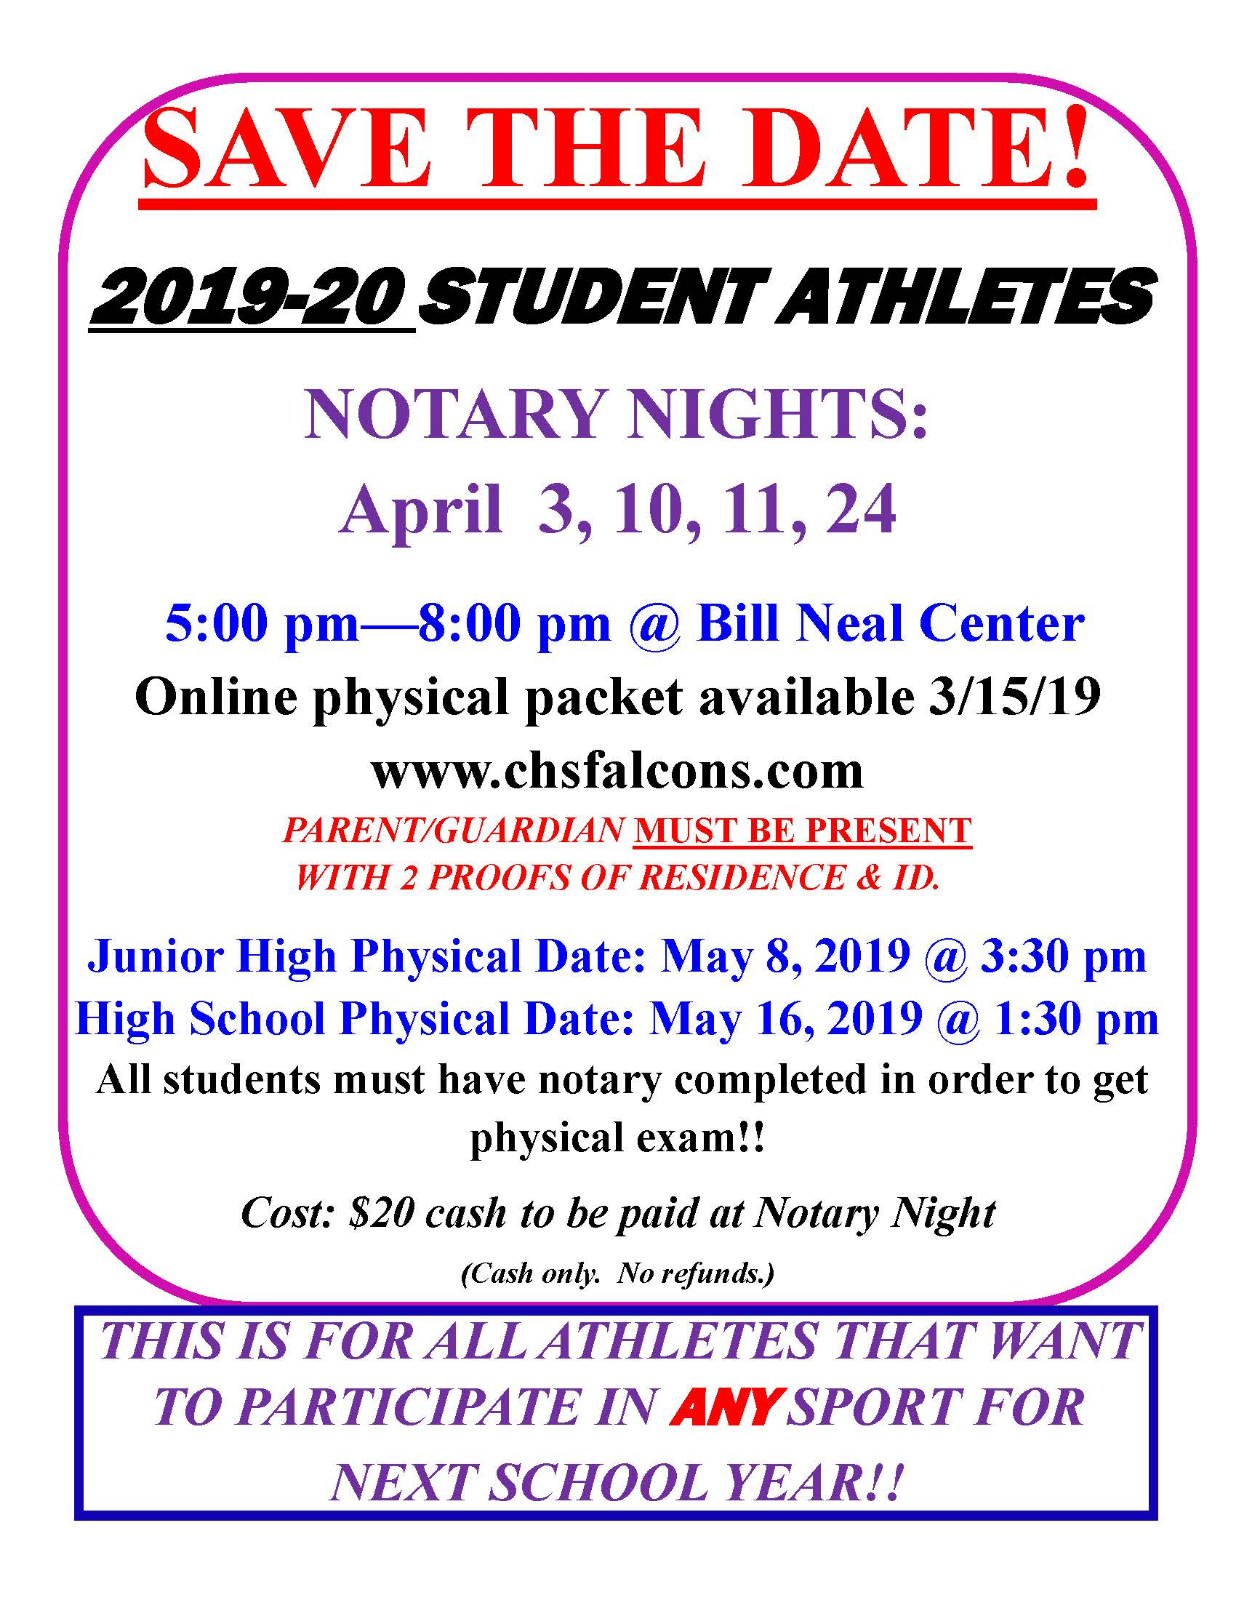 Save the Date! 2019-20 Notary & Physical Time